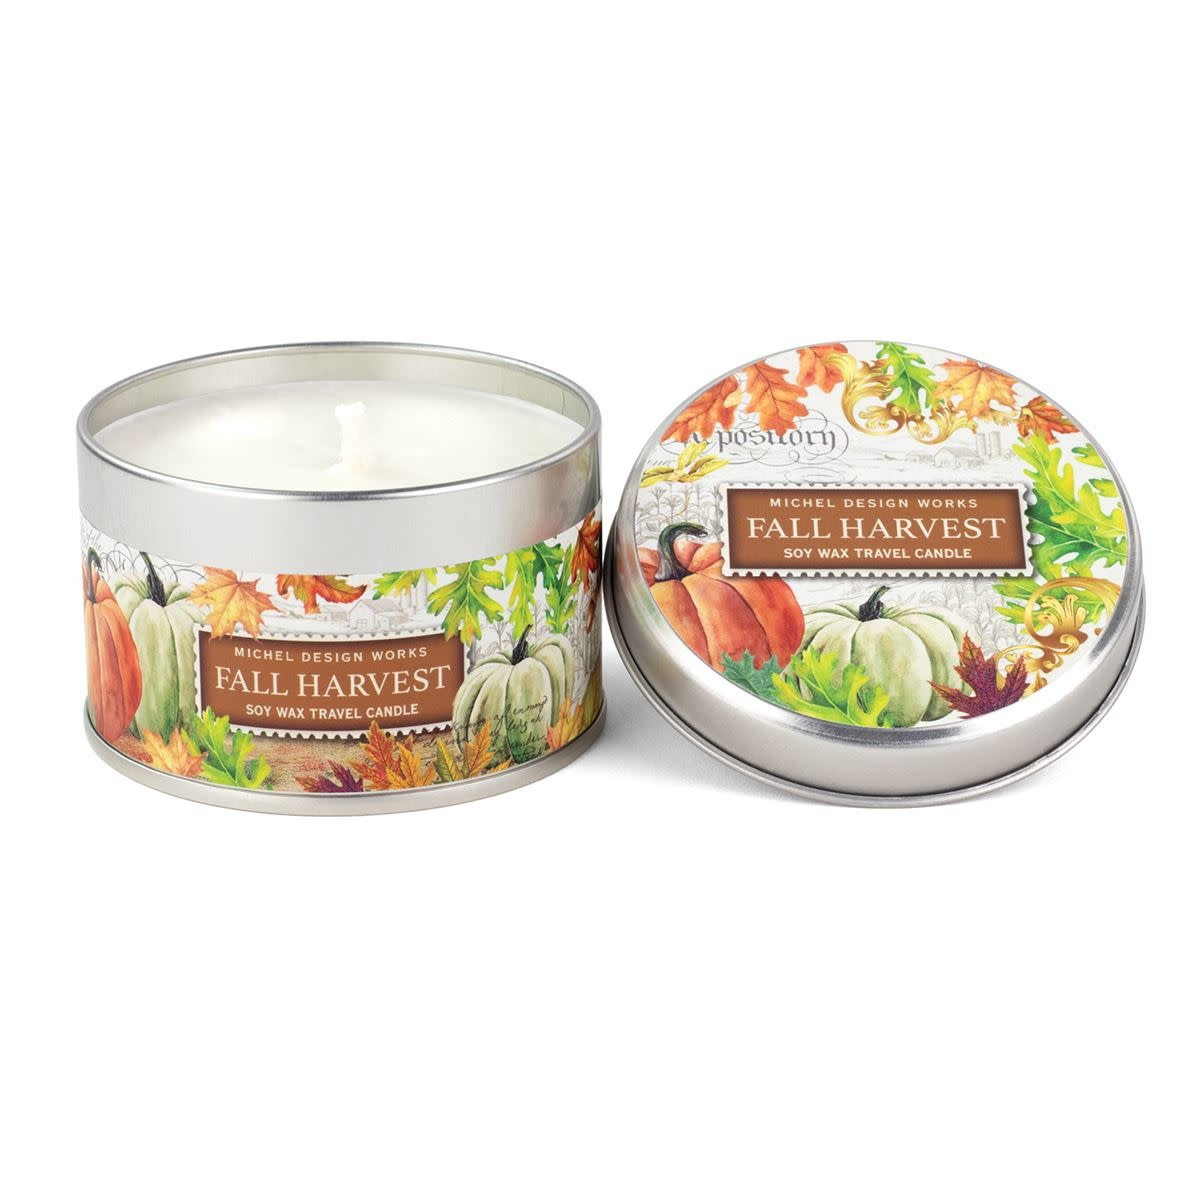 Michel Design Works Fall Harvest Travel Candle